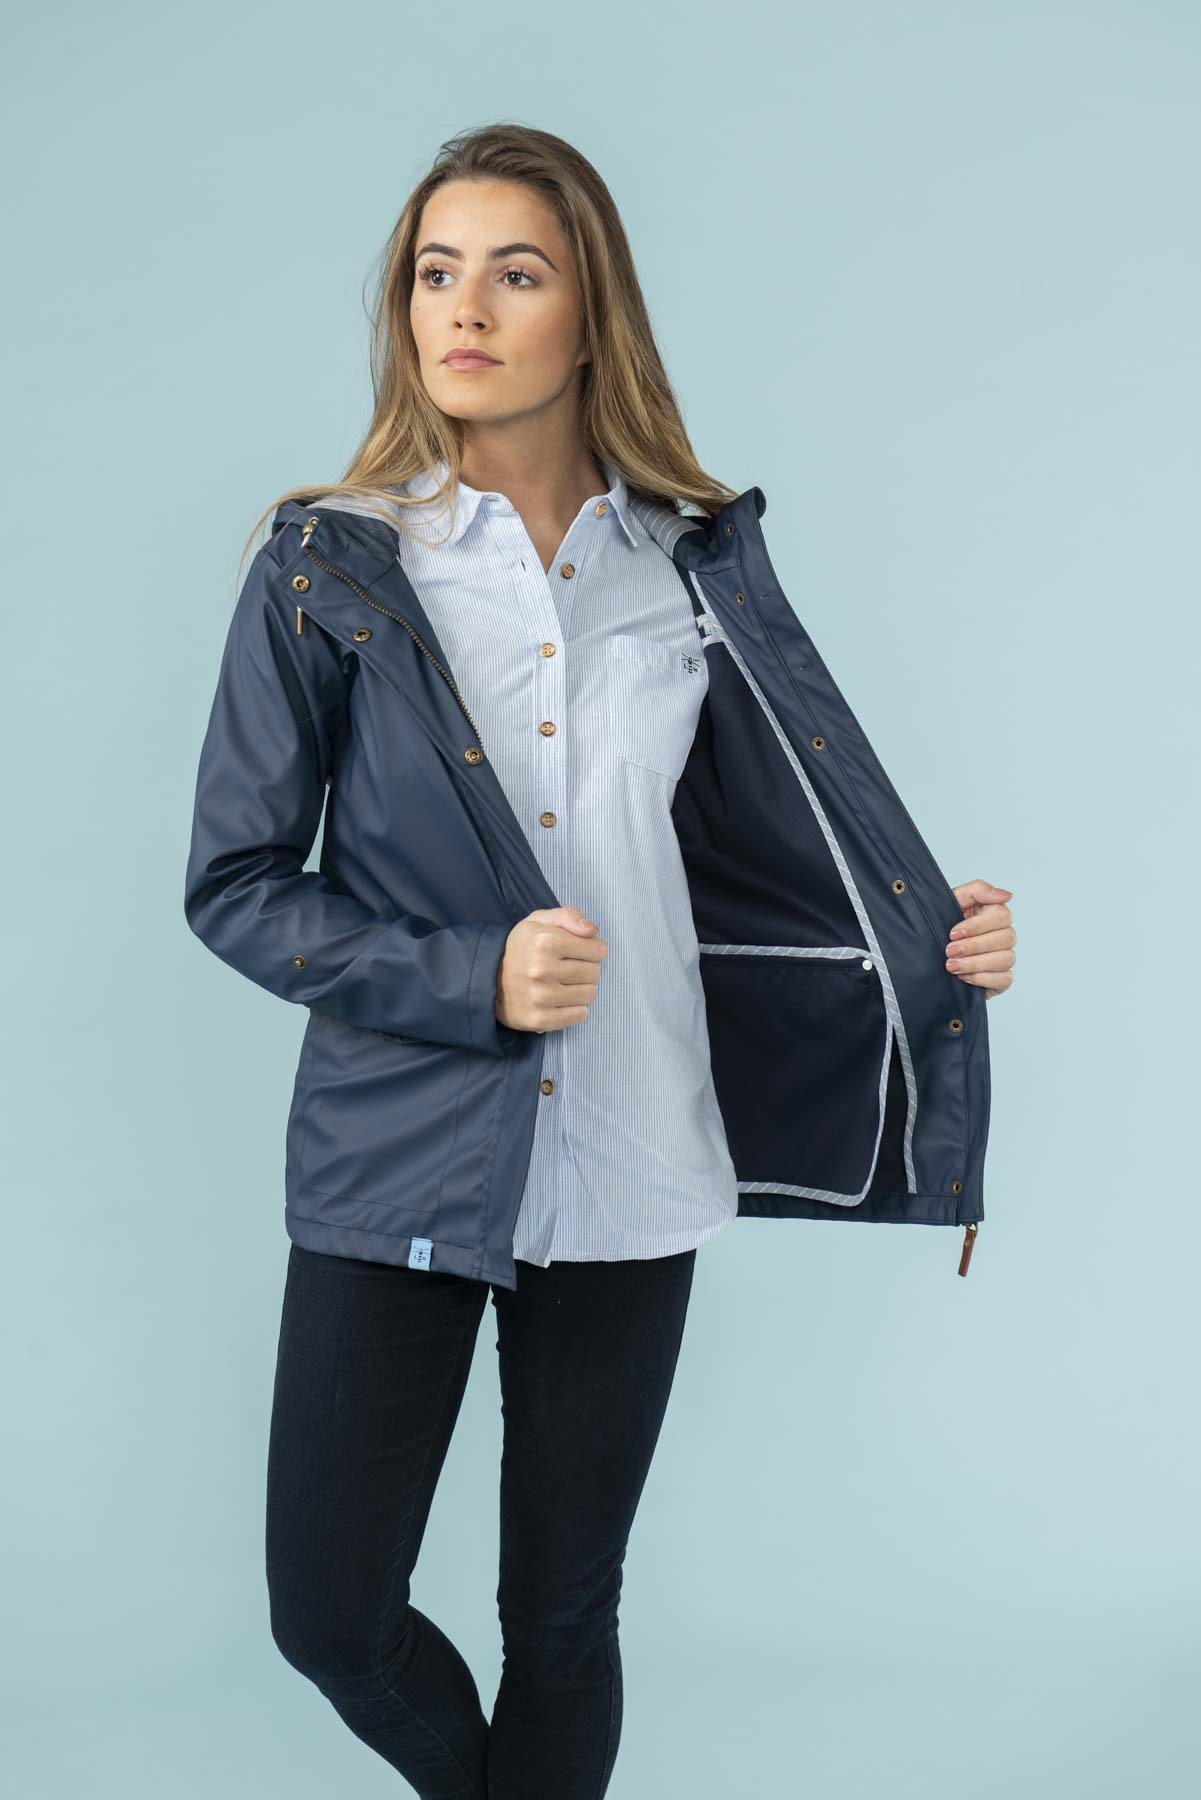 Women's Coats - Bowline - Navy Raincoat